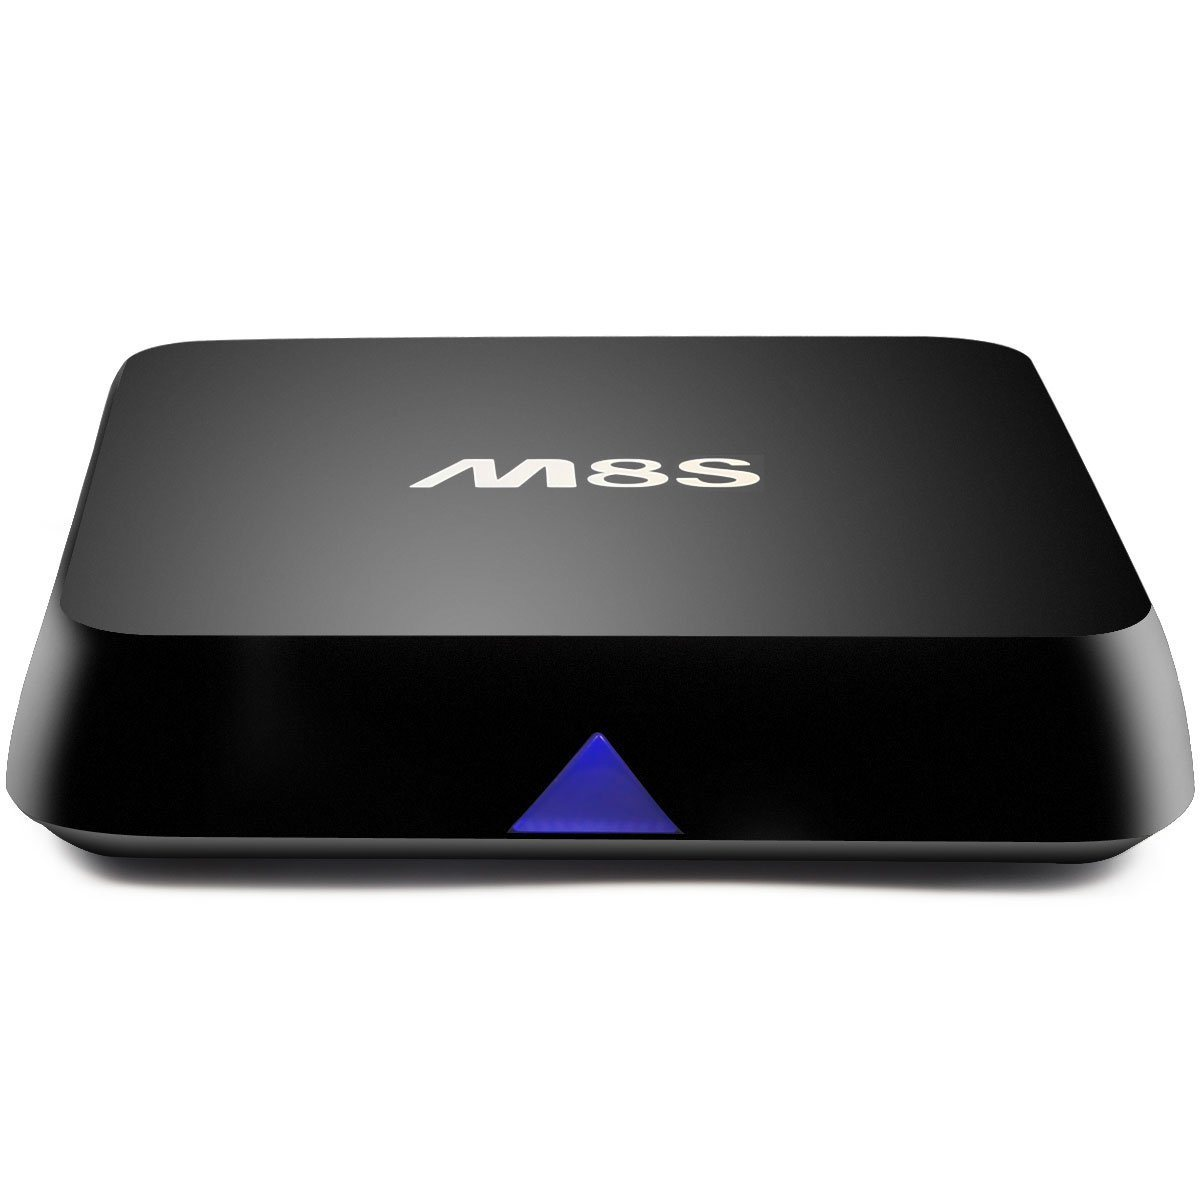 Lxx Android WiFi Smart Media Player TV Set Top Box